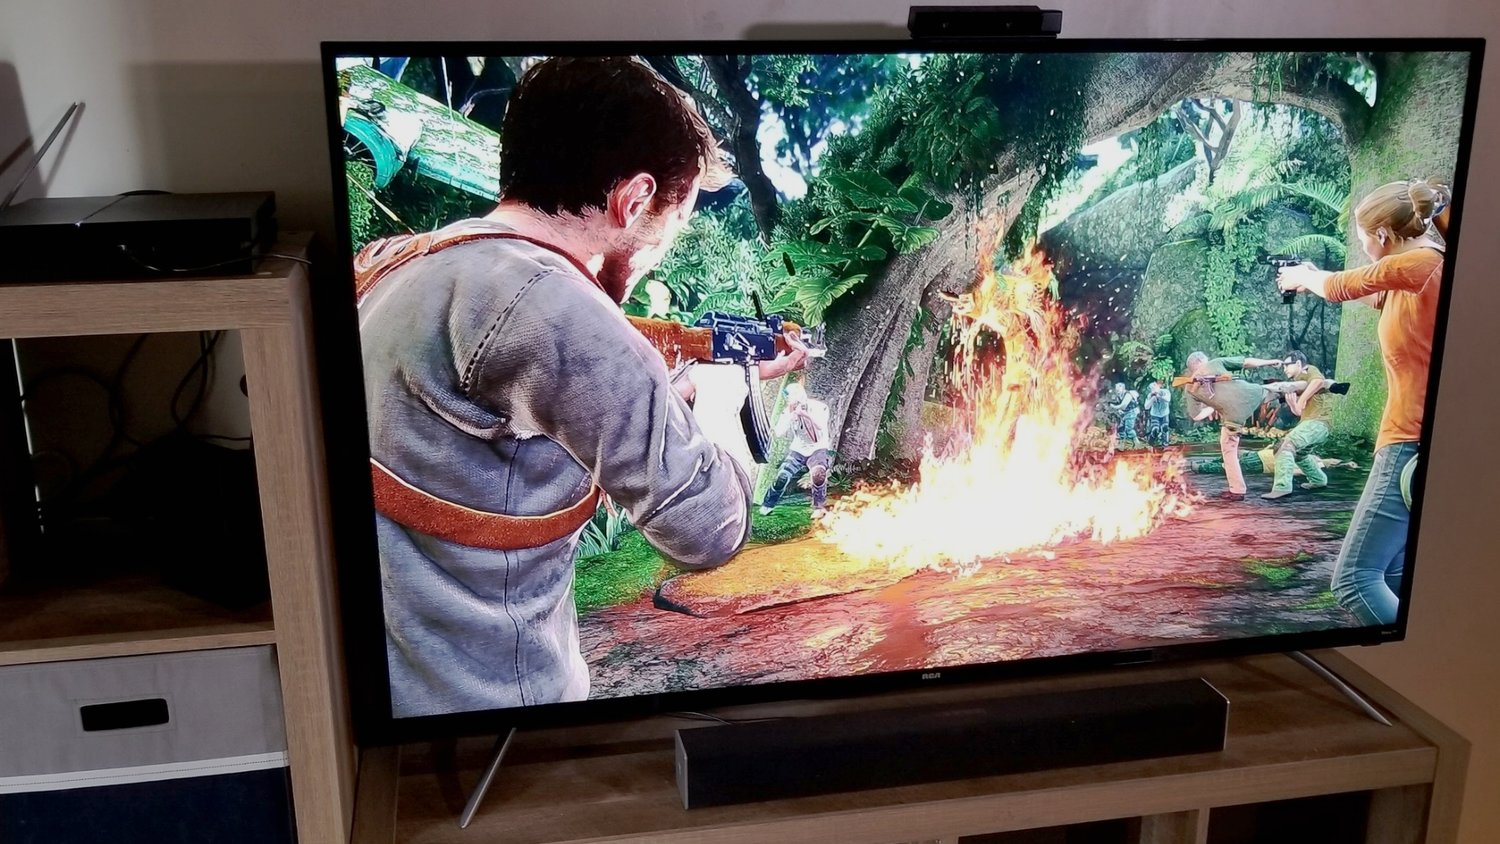 RCA RTRU6527 4K HDR TV Review: Better for Gaming Than Most Others